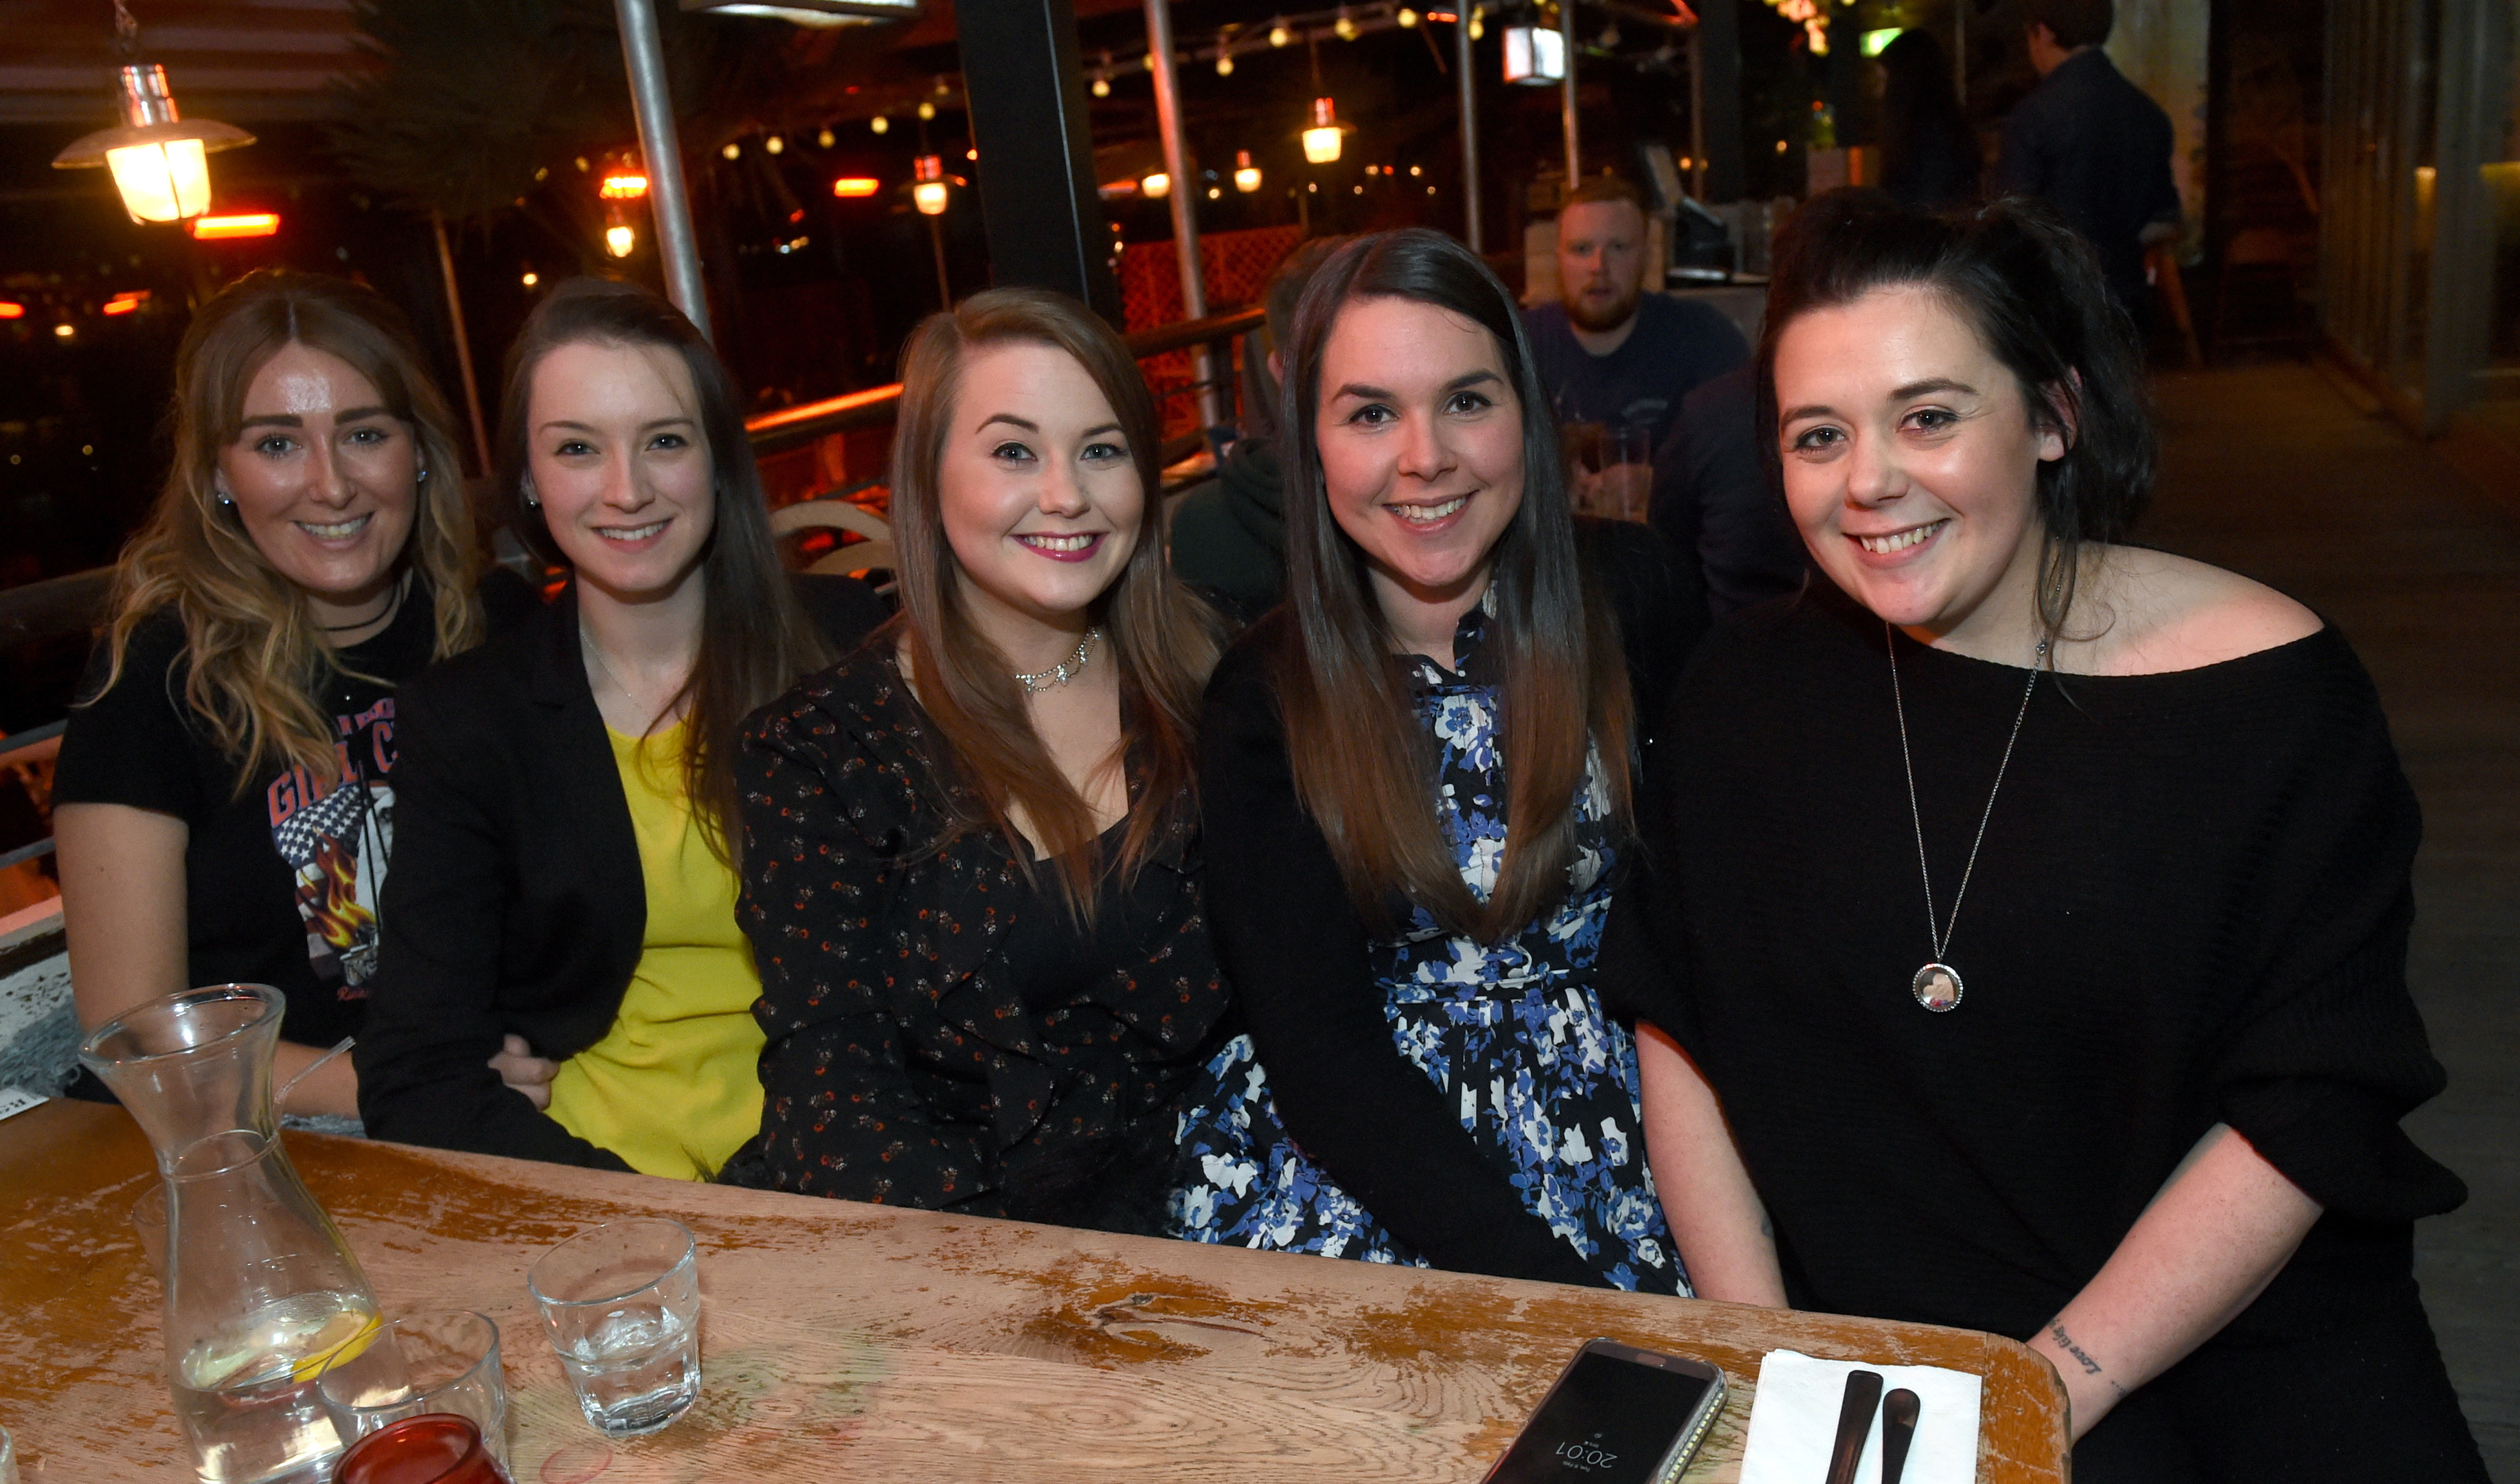 Revolution: Donna Elrick, Lauren Craig, Aimee Fyvie, Ashleigh Mackenzie and Kelly Robertson.